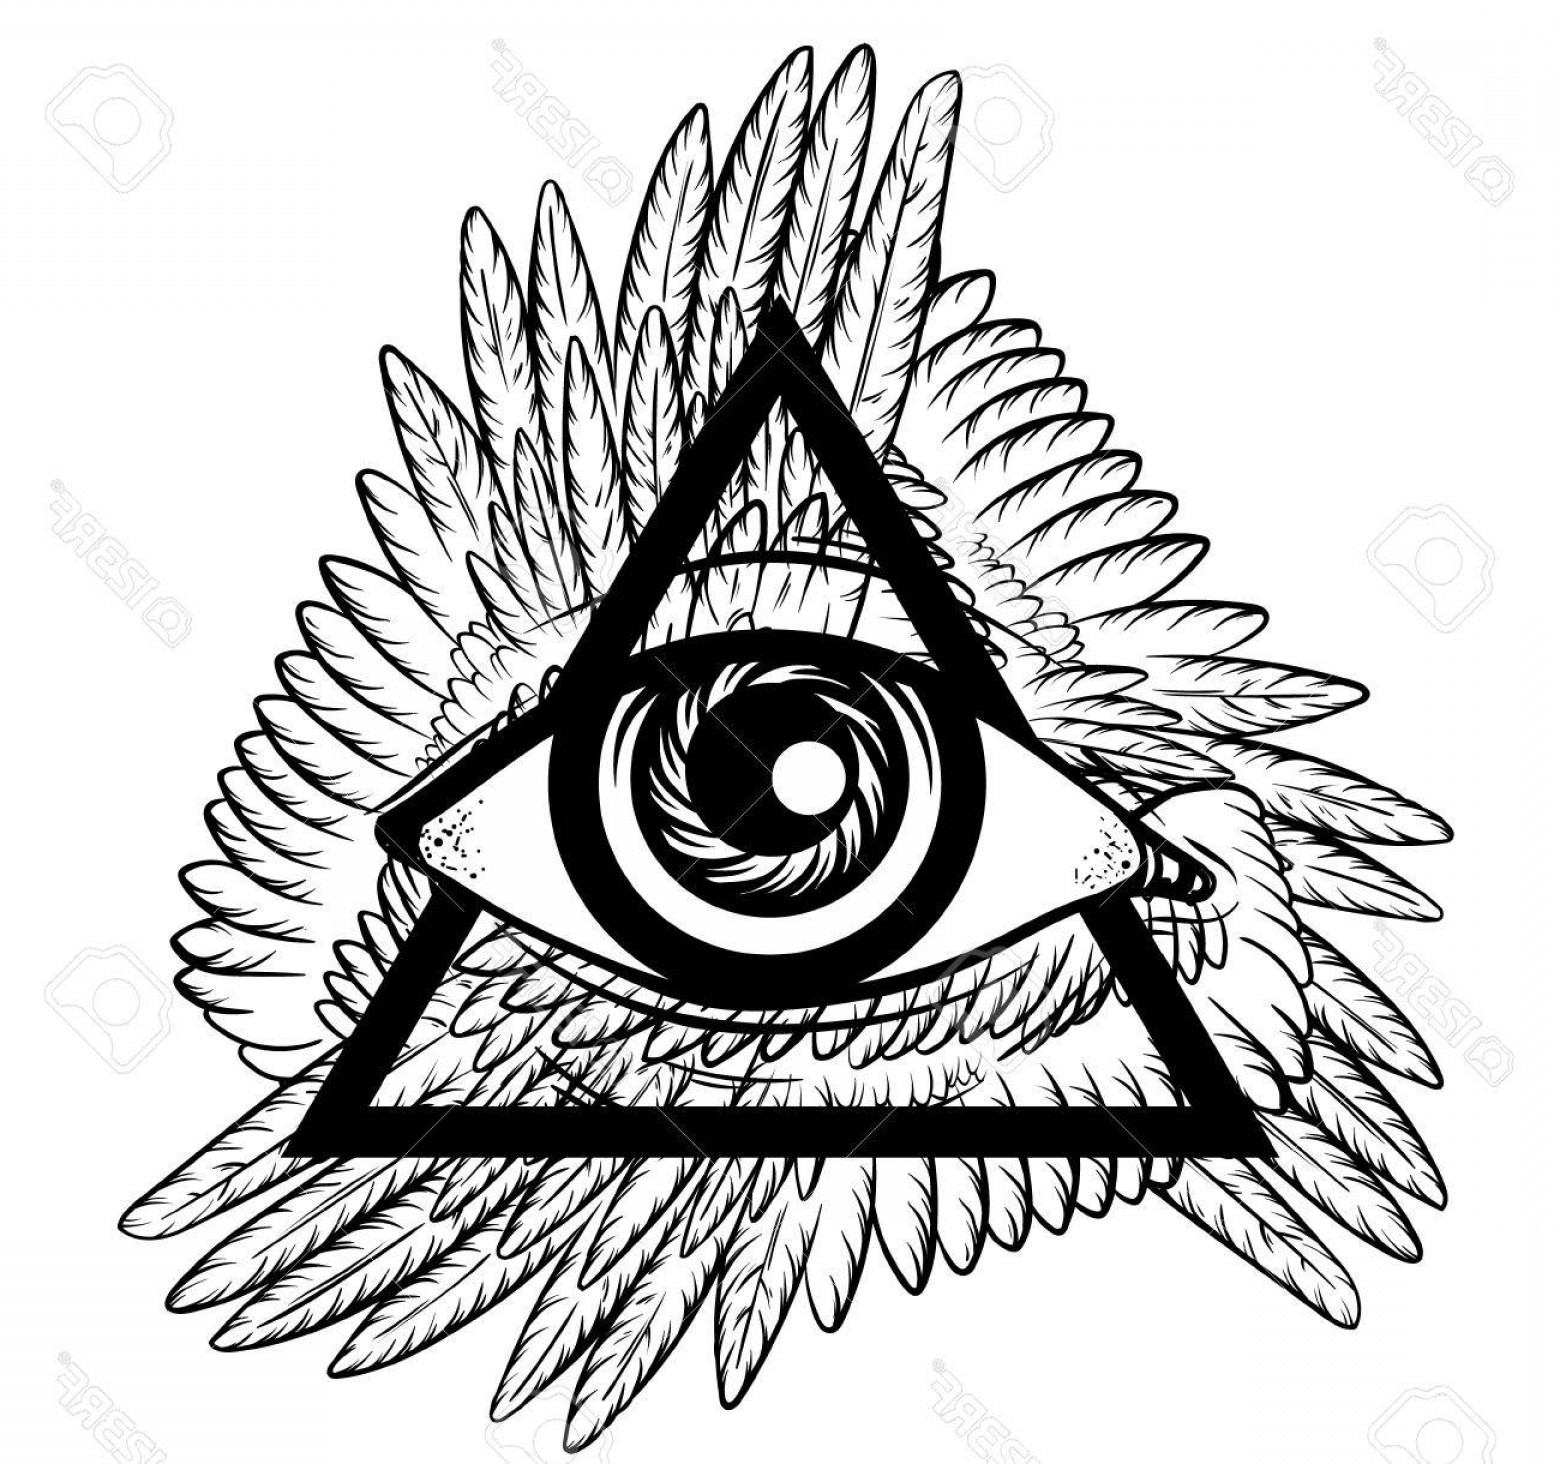 1560x1464 Photostock Vector Vector Hand Sketched Illustration All Seeing Eye